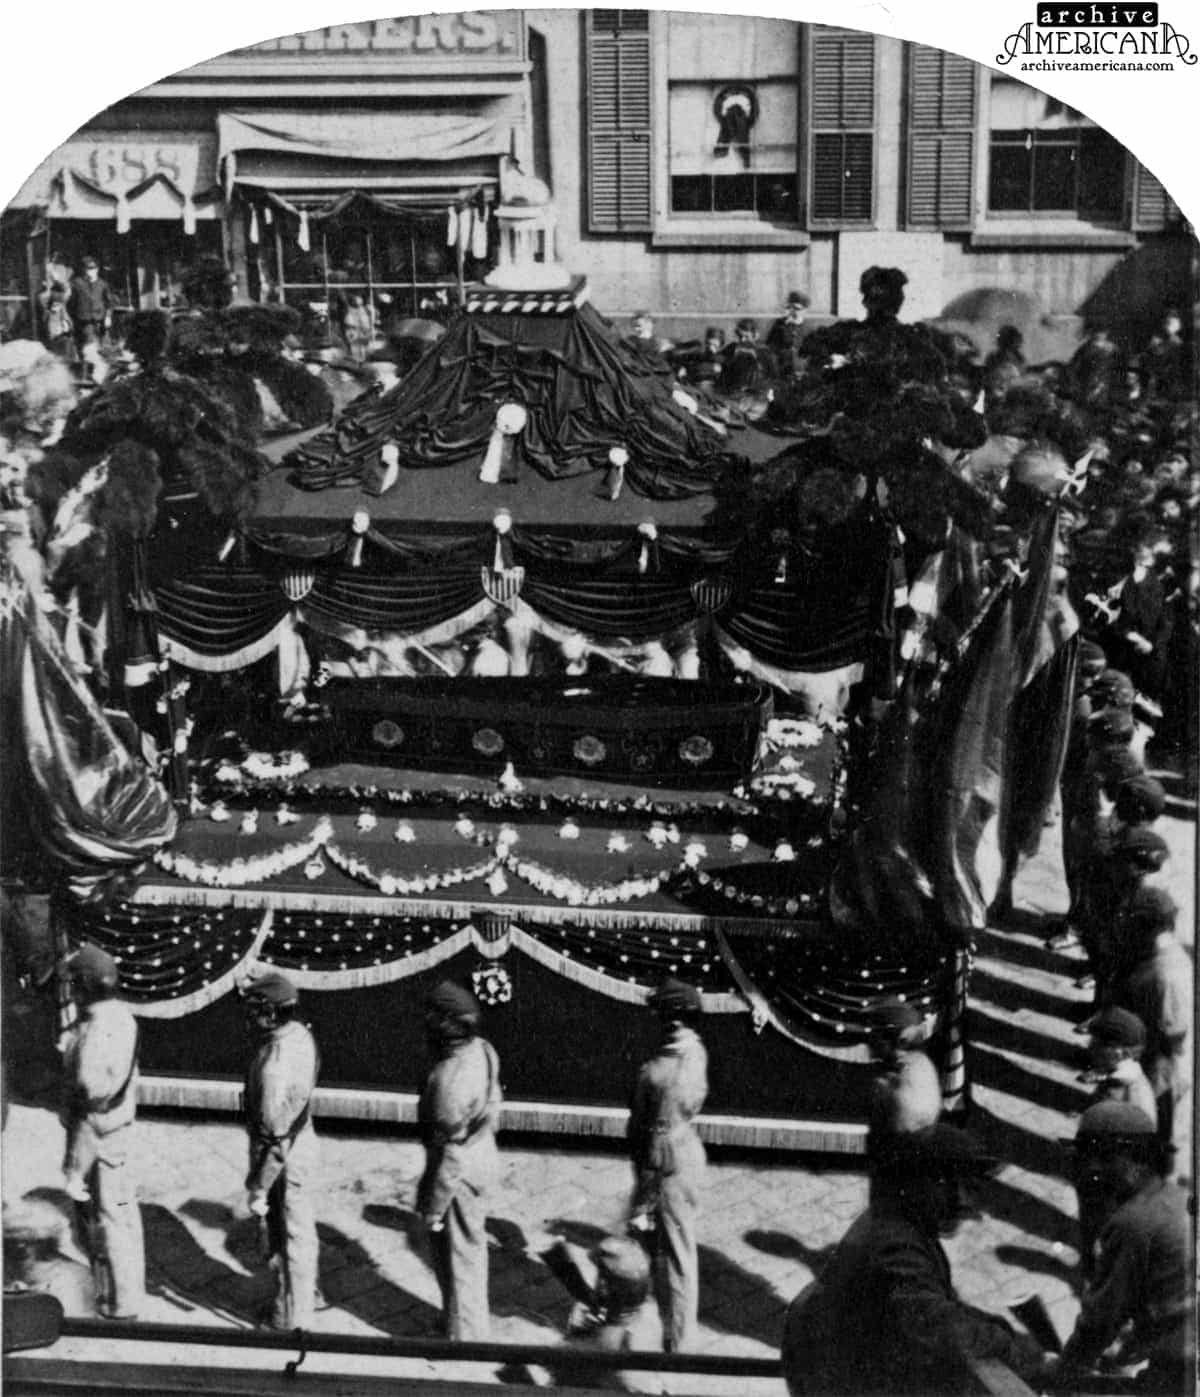 President Lincoln S Funeral 1865 Click Americana